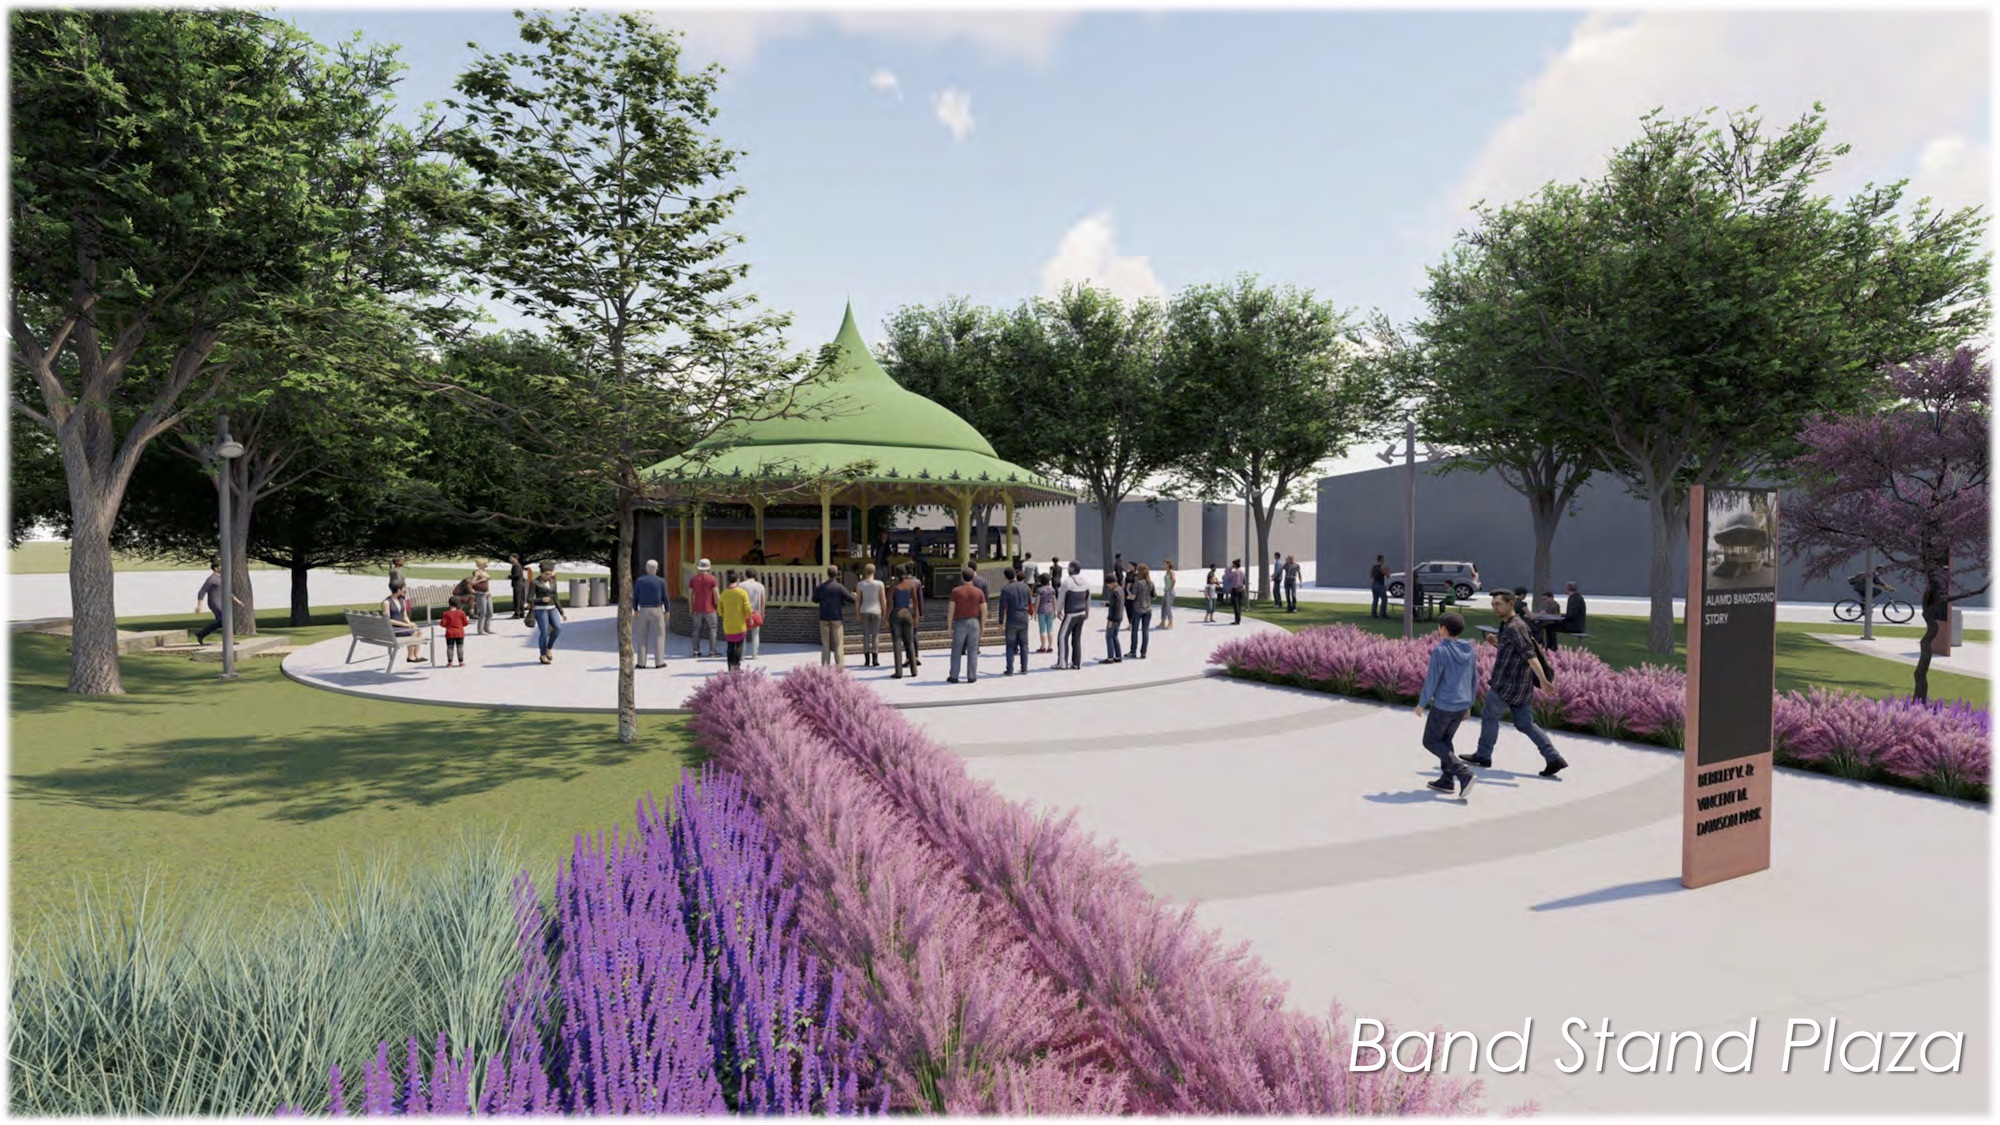 """This rendering shows what a pavilion or """"band stand"""" could look like inside the park planned in the near East Side."""